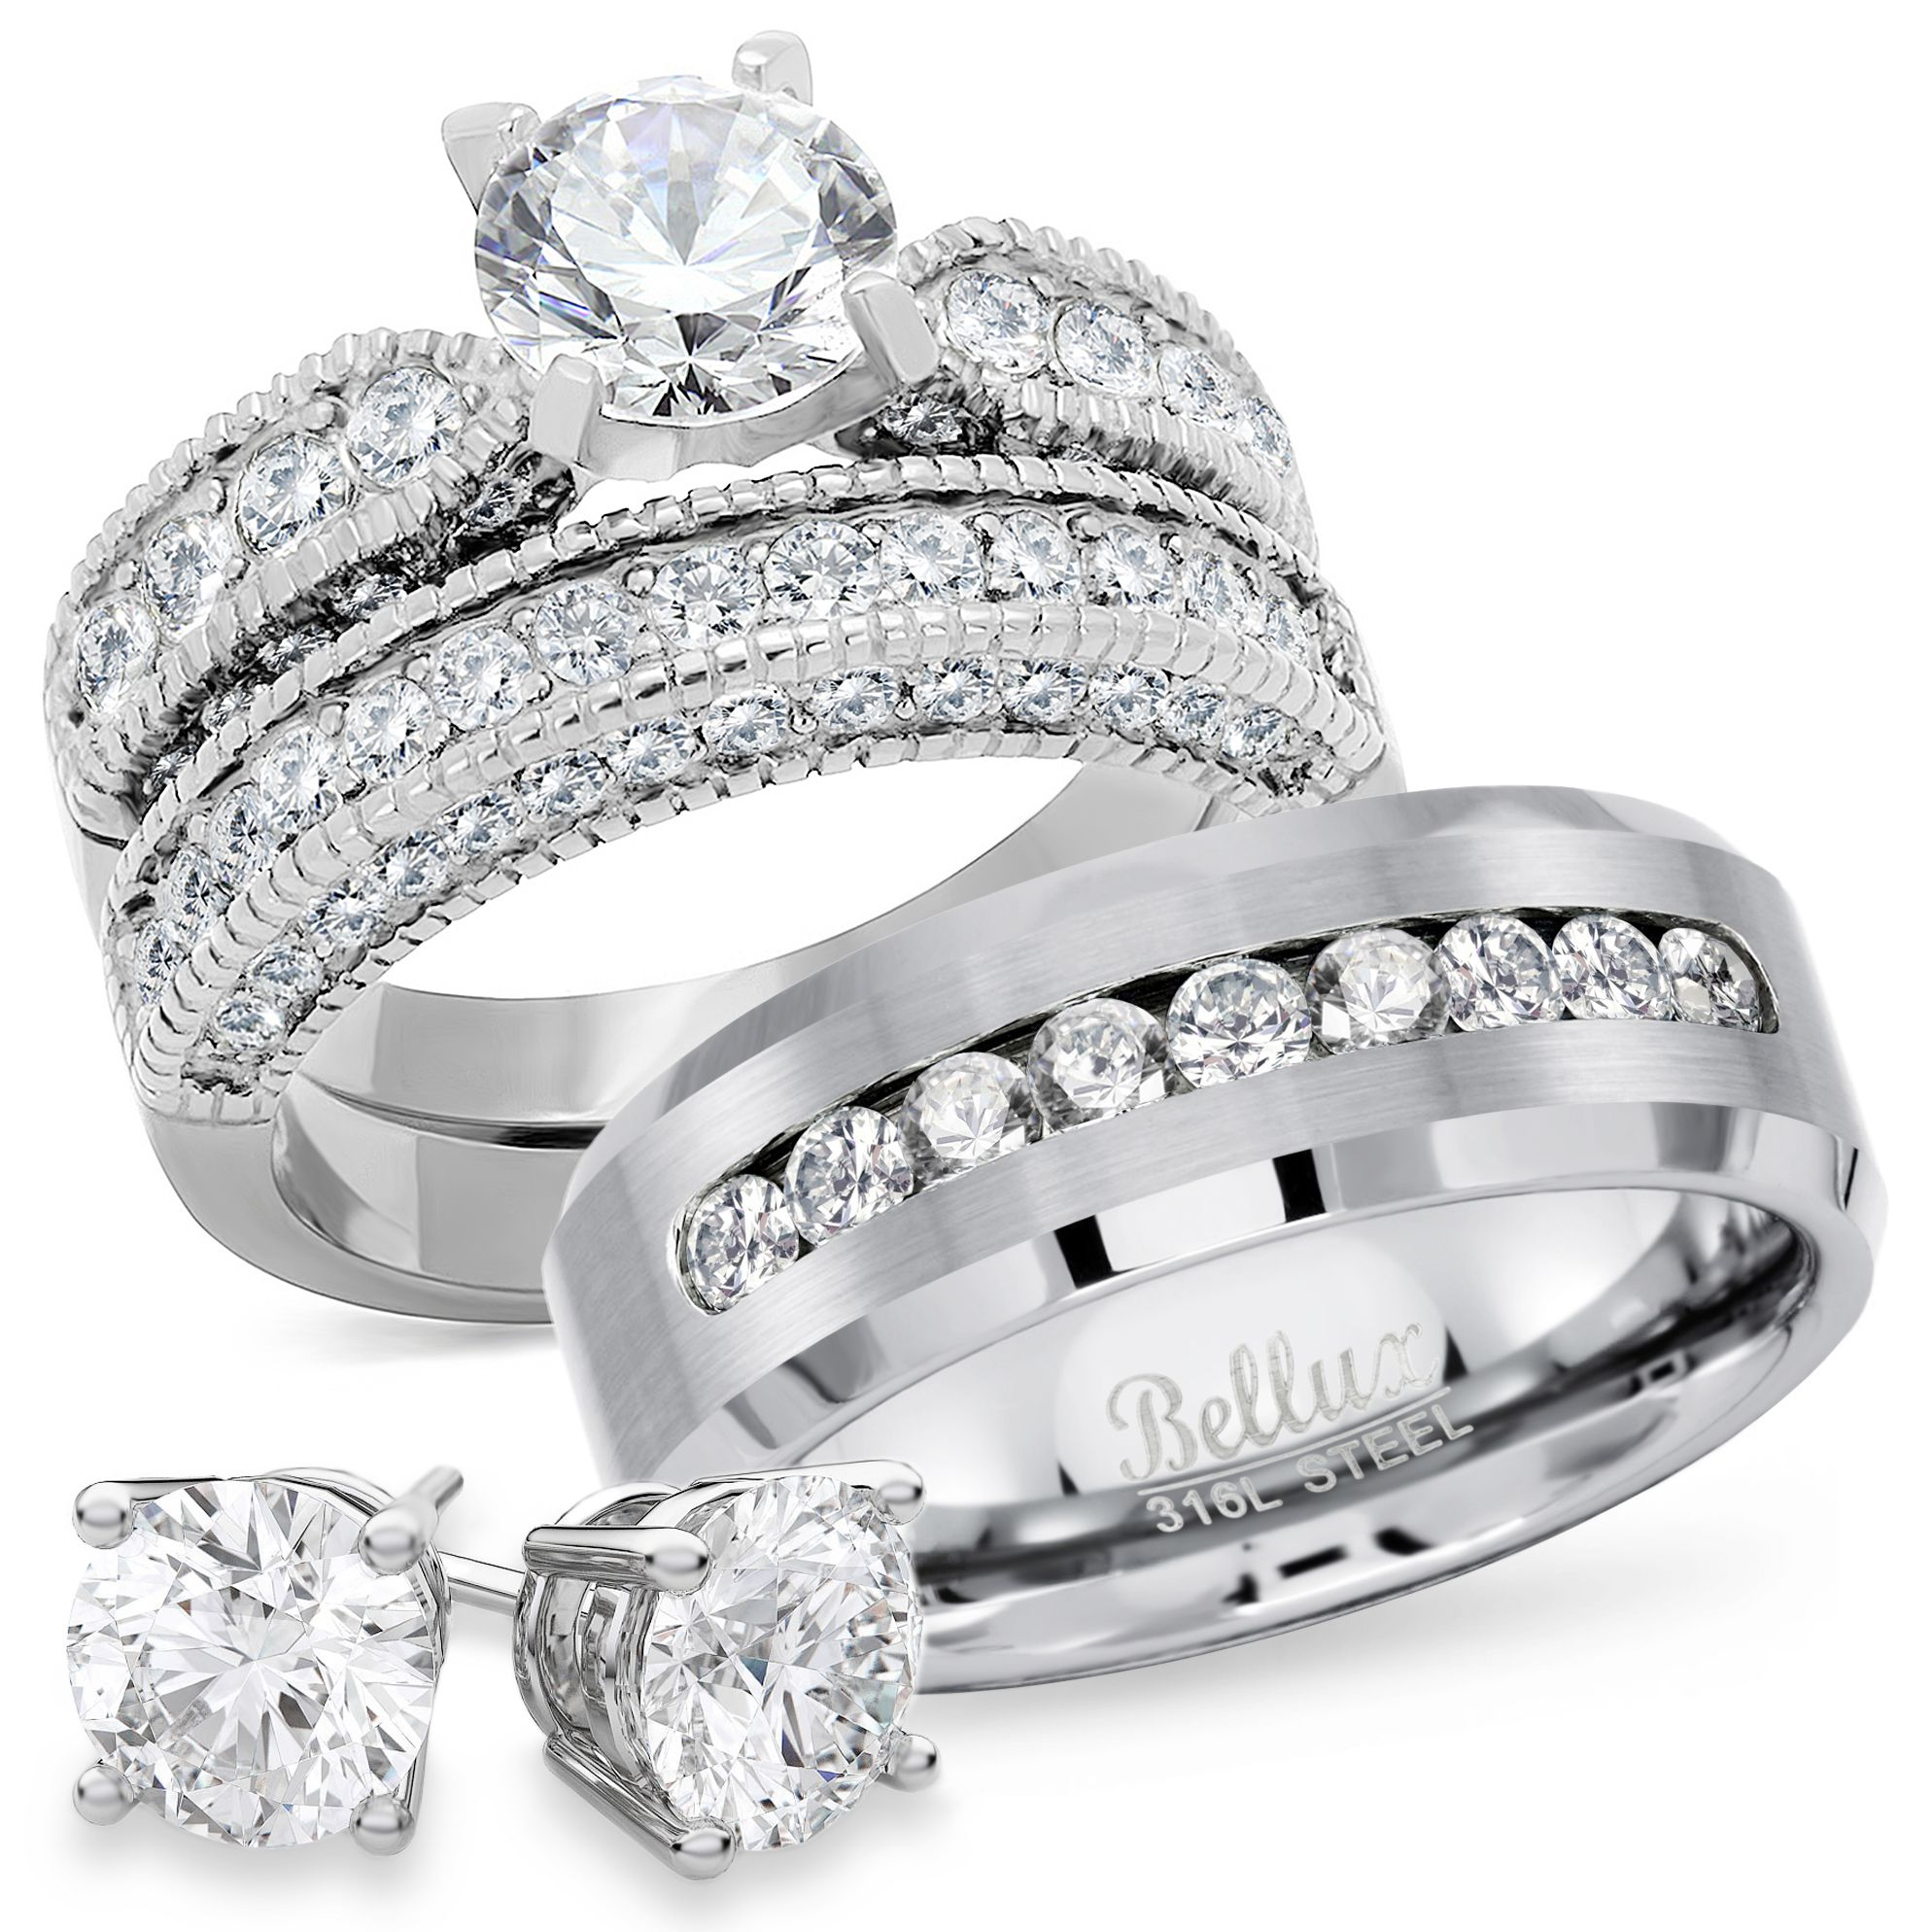 Free 2day shipping. Buy Wedding Rings Set for Him and Her